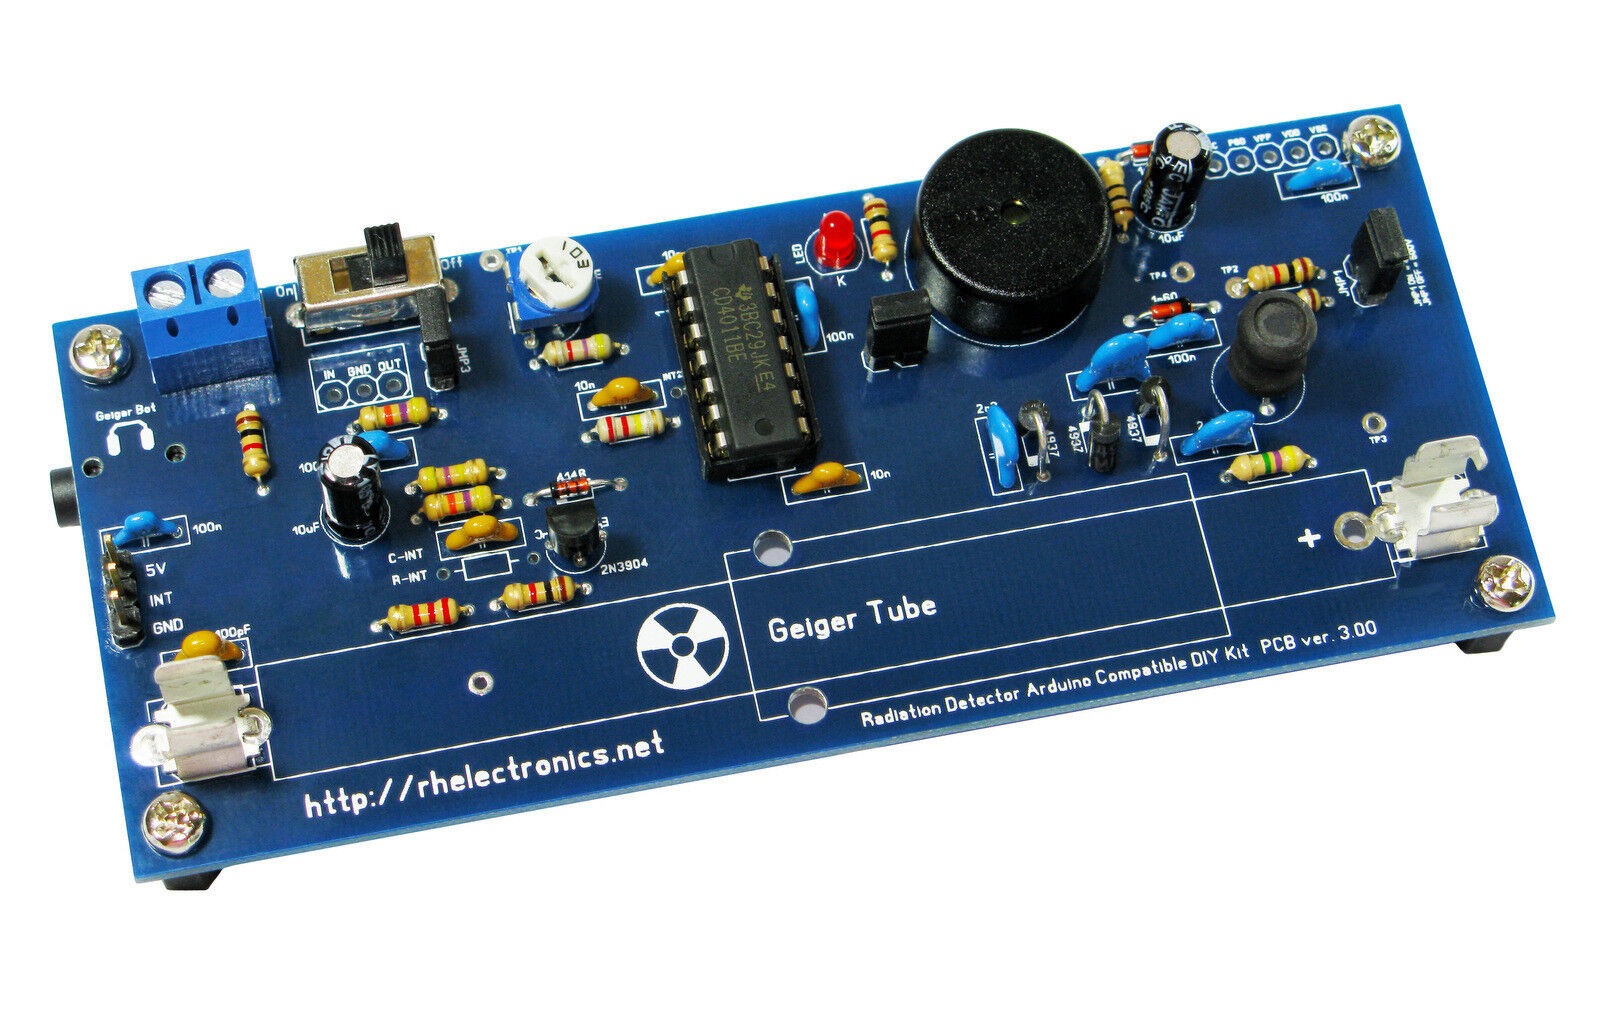 Diy geiger counter kit nuclear radiation detector for